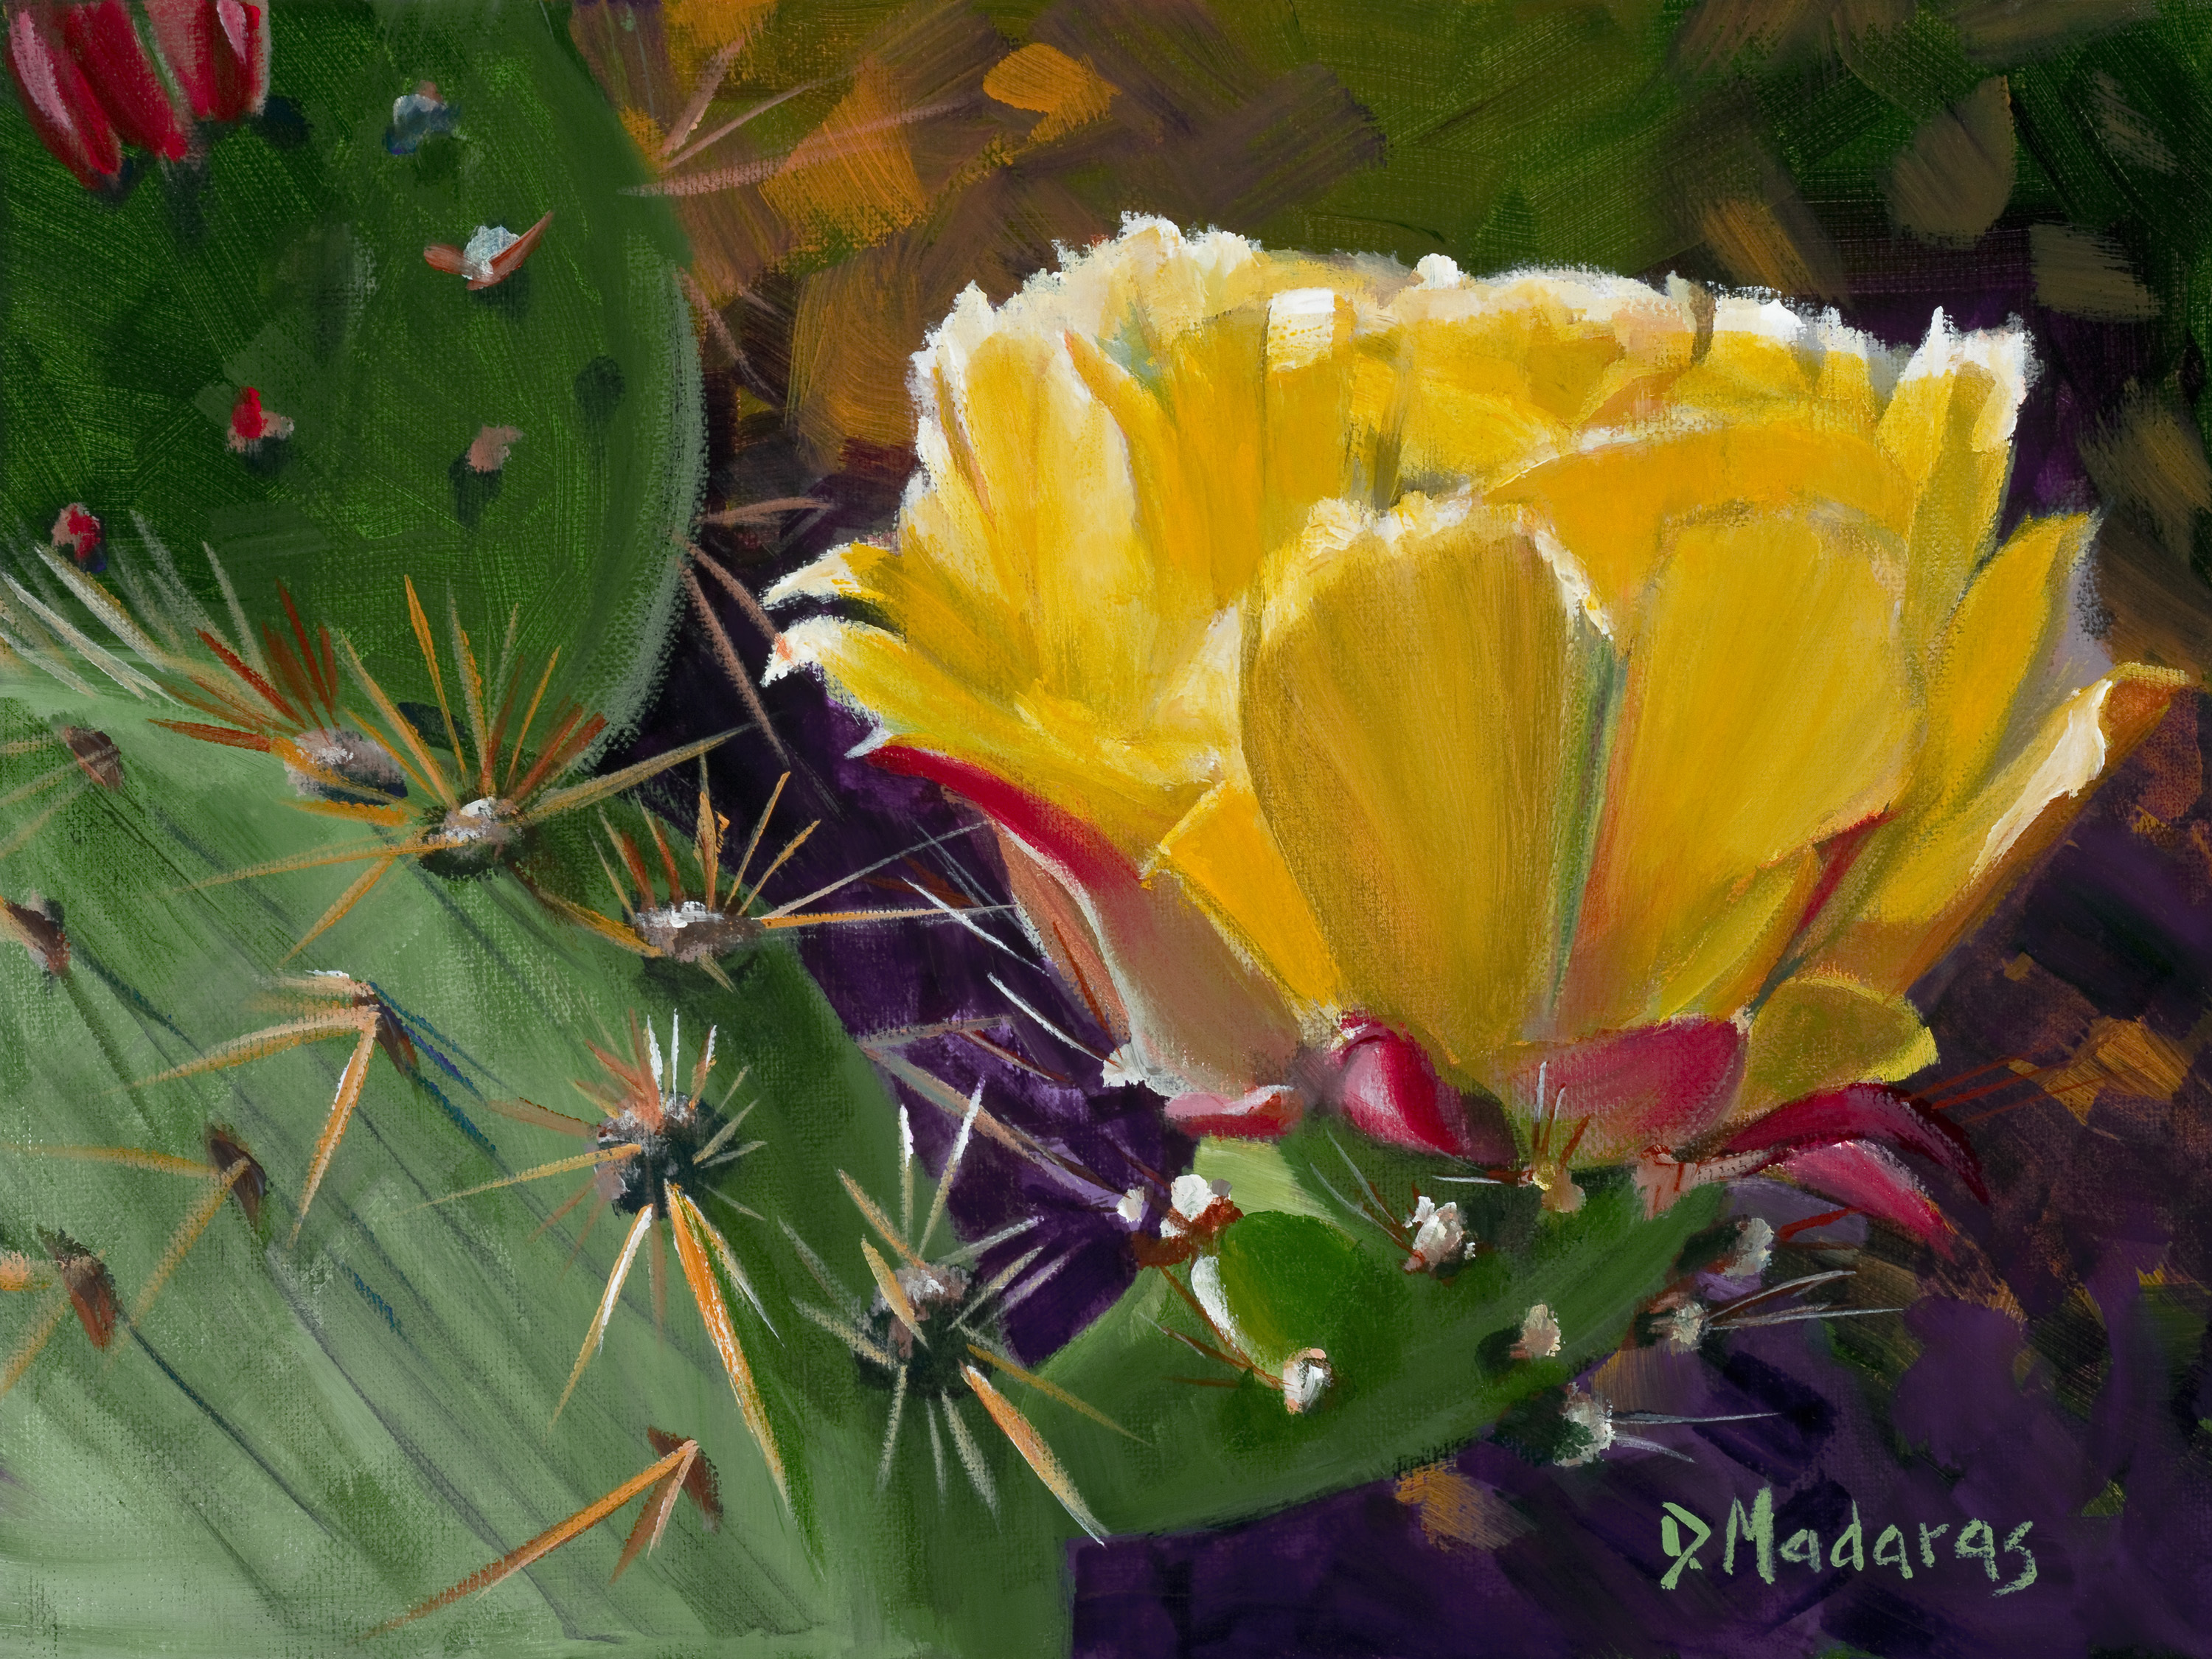 Prickly_pear_bloom_by_diana_madaras_copy_apfty2